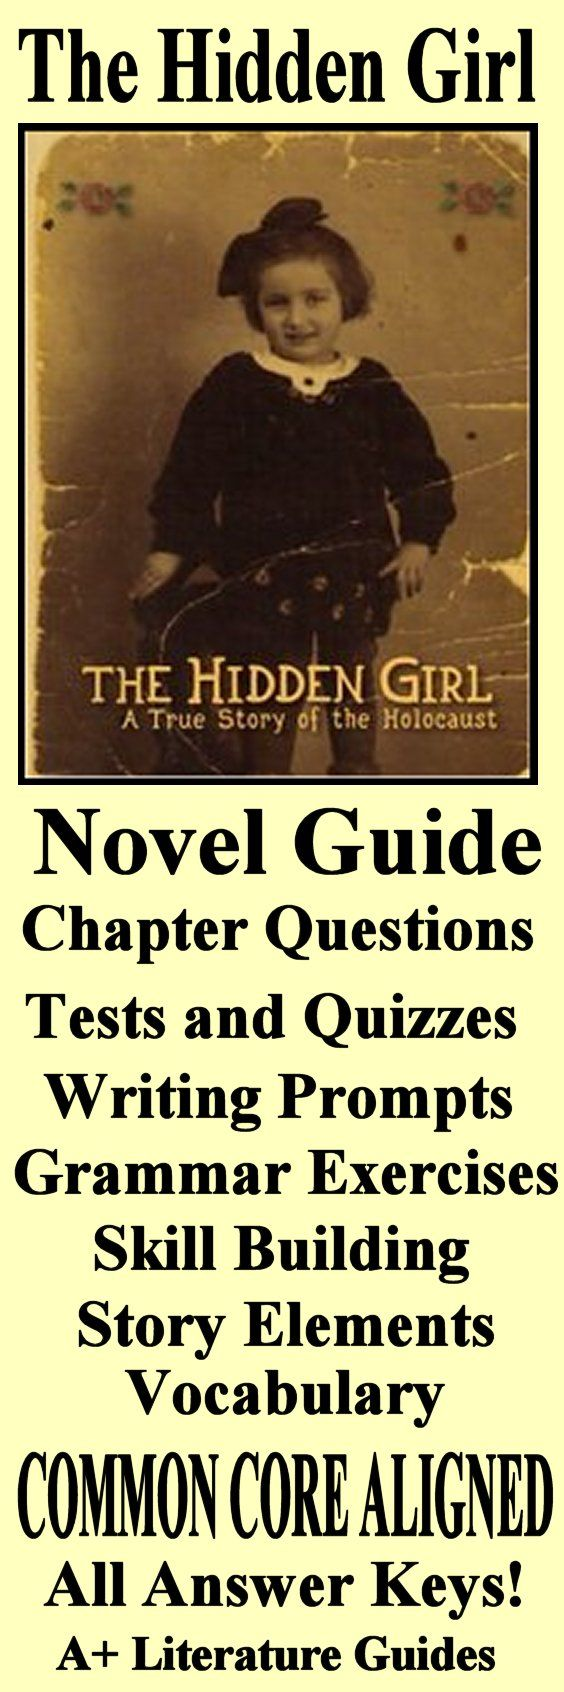 This is an 88 page Complete Literature Guide and Assessment Pack for The Hidden Girl by Lola Rein Kaufman. This is the true story of her experiences as a Jewish child hiding in World War II Poland. This guide includes everything you need to teach and assess the novel including chapter questions and answers, weekly quizzes and final test, interactive activities, writing assignments, a pacing guide and much, much more! Just print and go!